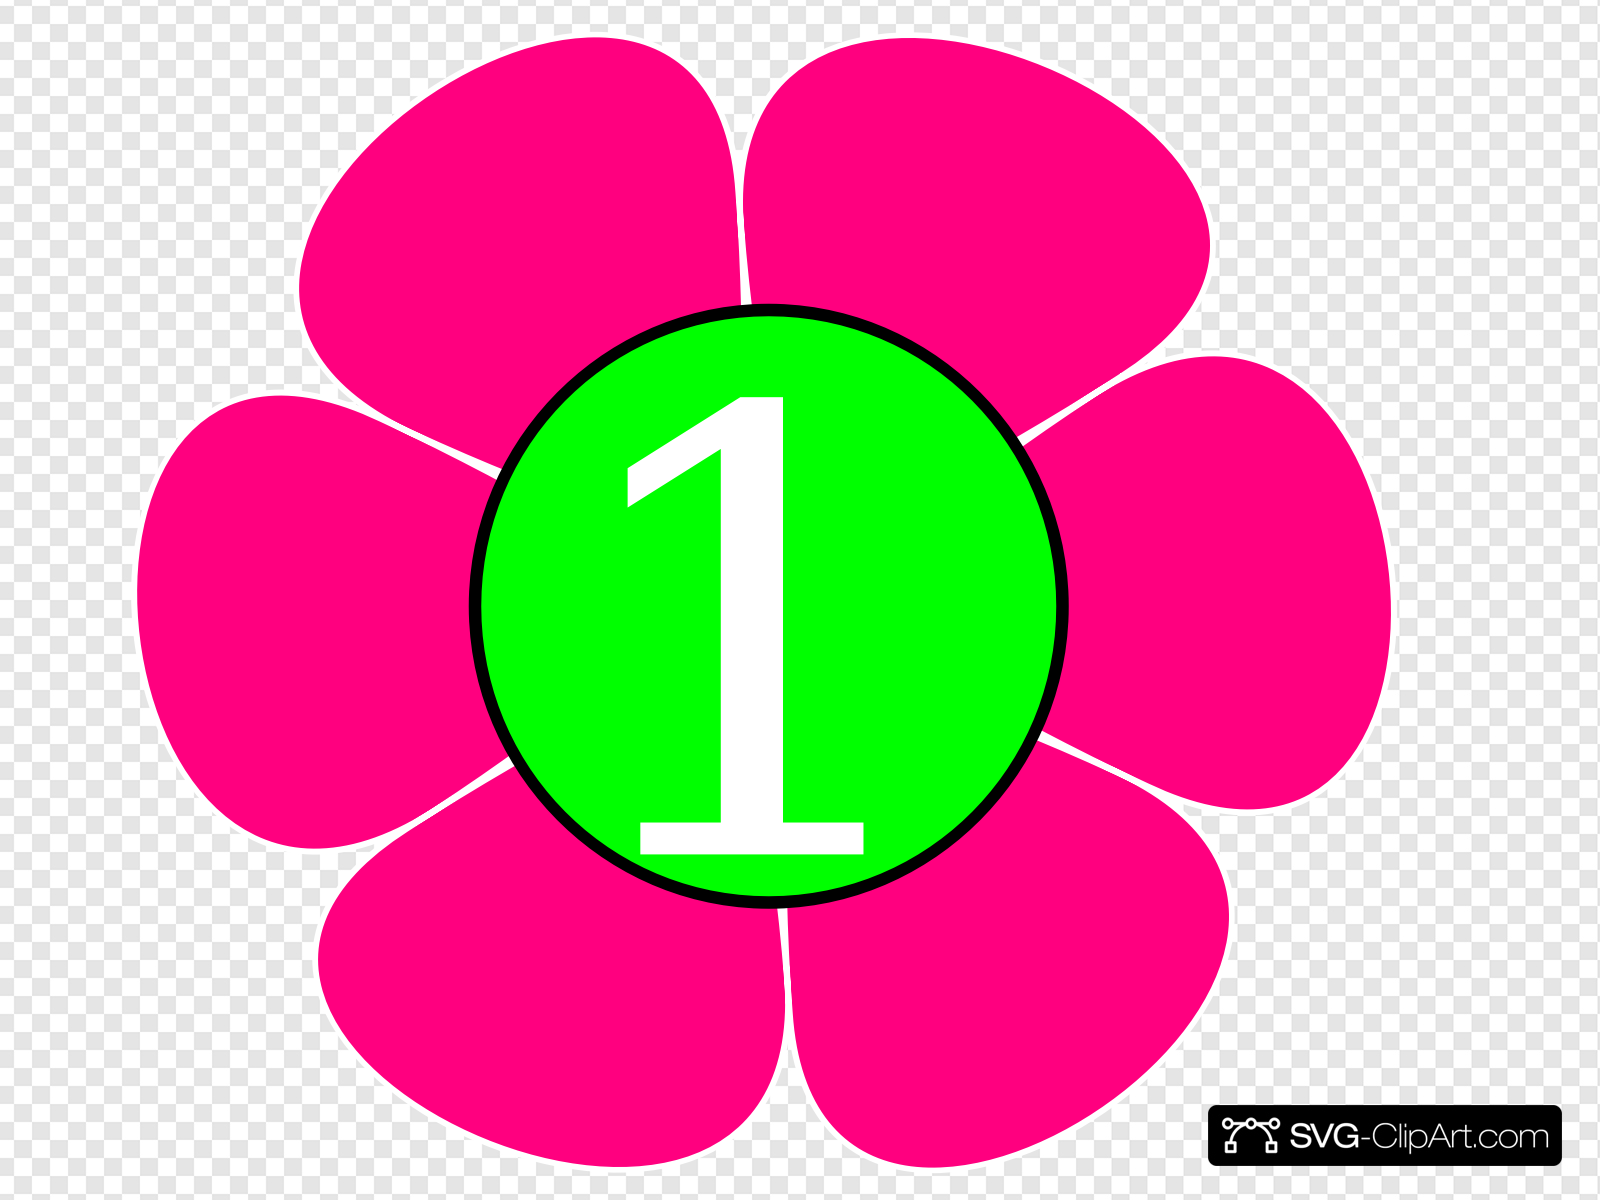 1 Pink Green Flower Clip art, Icon and SVG.